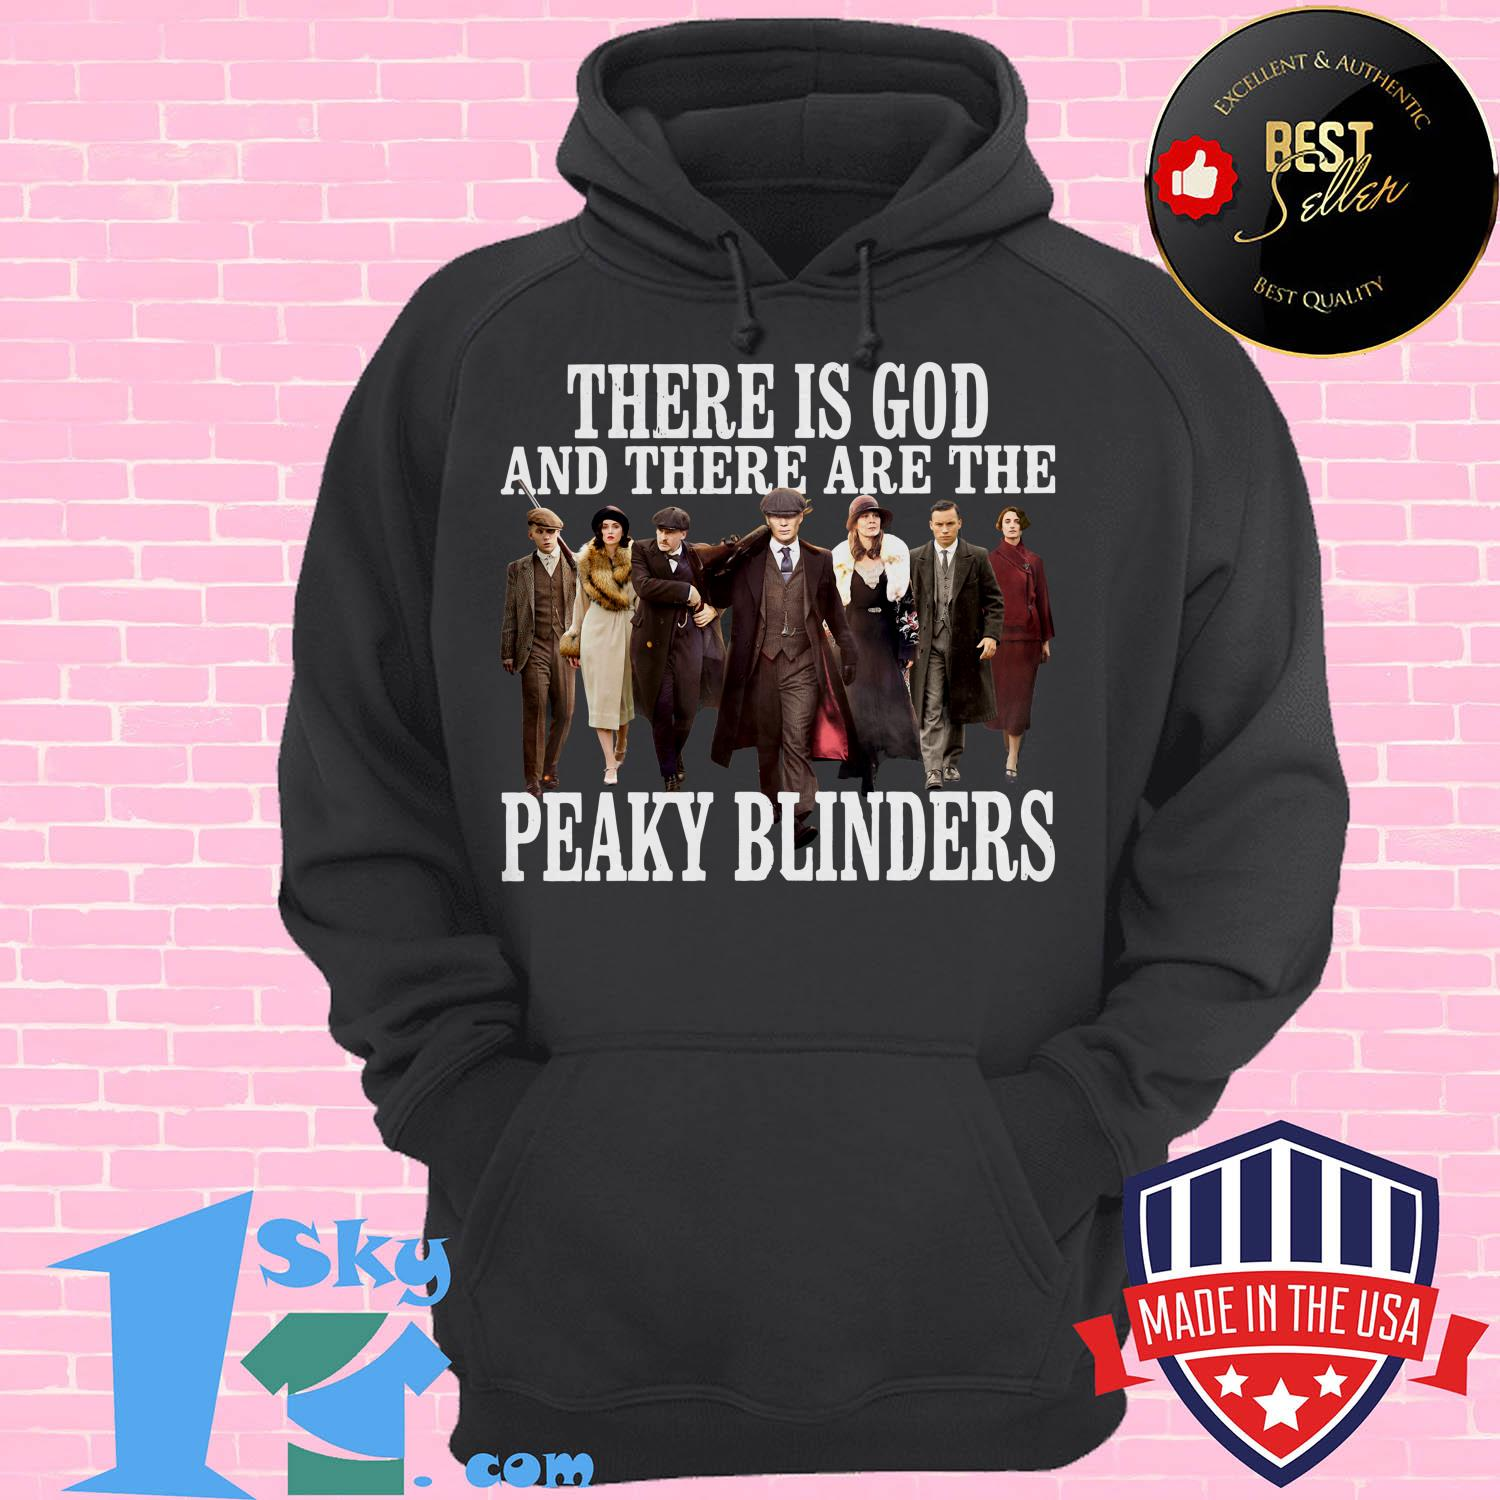 there is god and there are the peaky blinders hoodie - There is God and There are The Peaky Blinders shirt